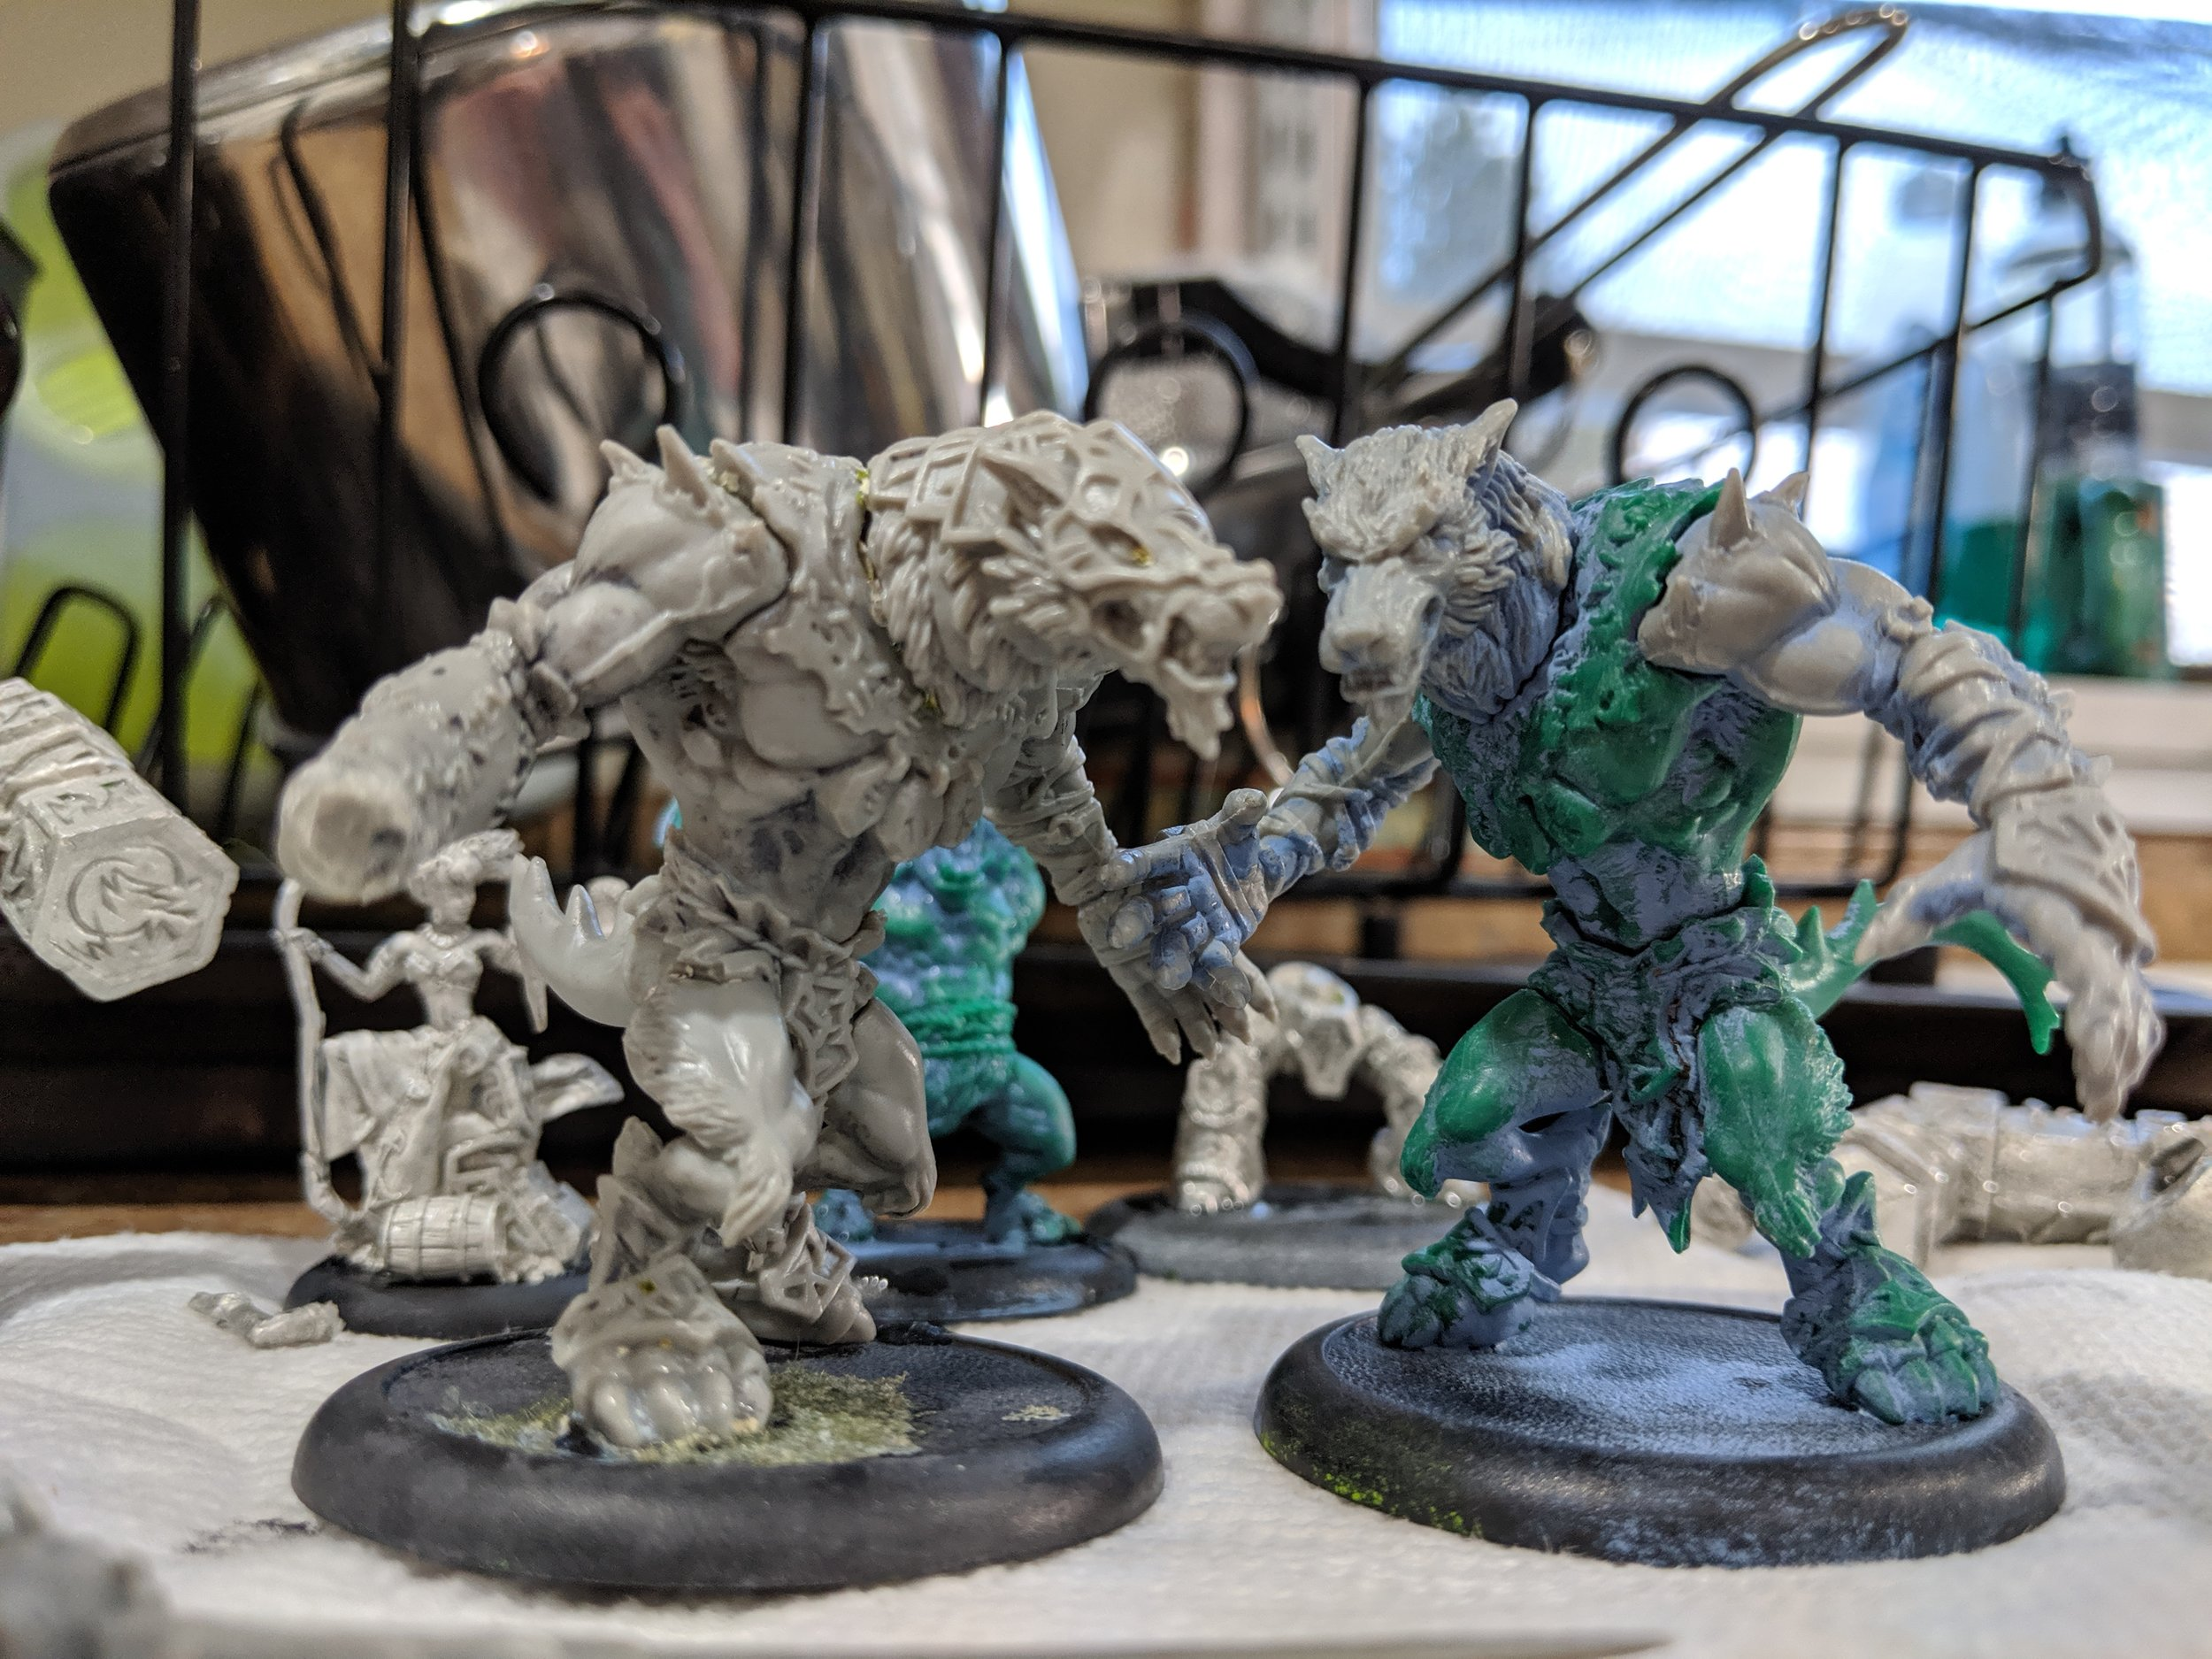 Here are two Warpwolves I stripped at the same time. Looks like the battlebox plastic wants to hold onto the primer in some areas.